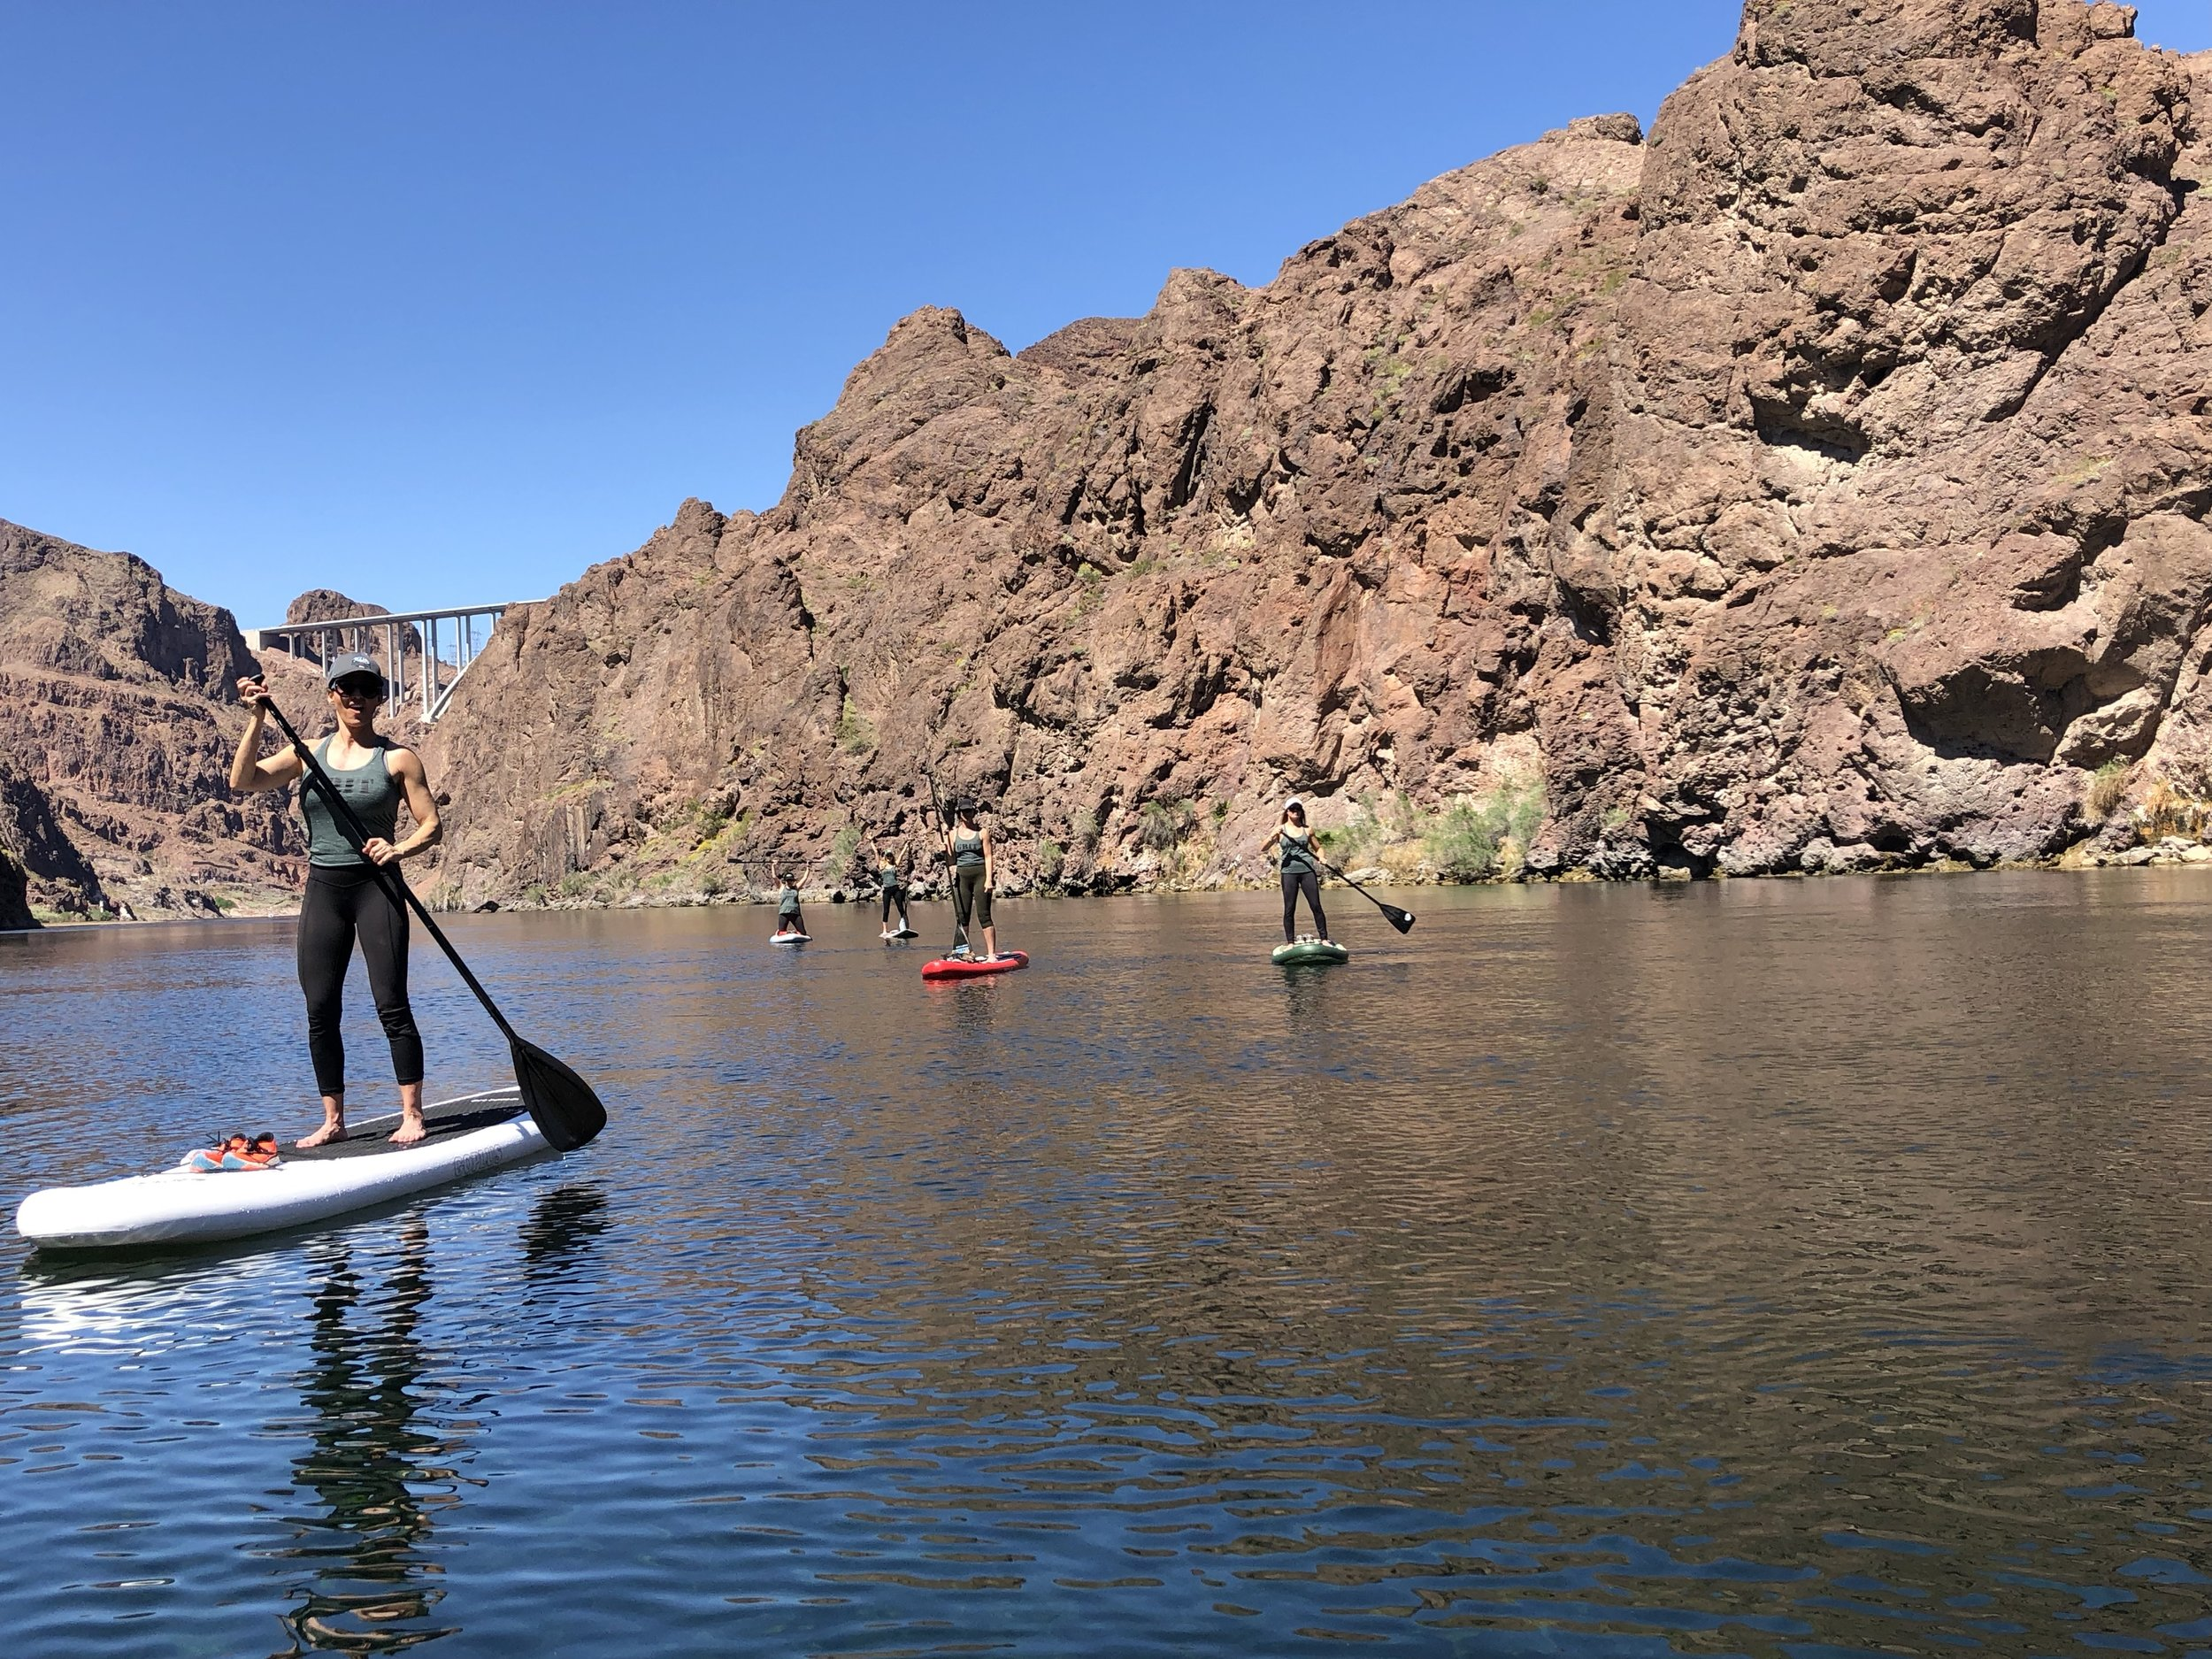 """G.R.I.T. """"Extreme"""" Experience - After hiking 2.5 hours, these strong women paddled their SUPs (stand up paddleboards) down the Mojave River 3 miles to the Arizona hot springs where we had lunch together."""